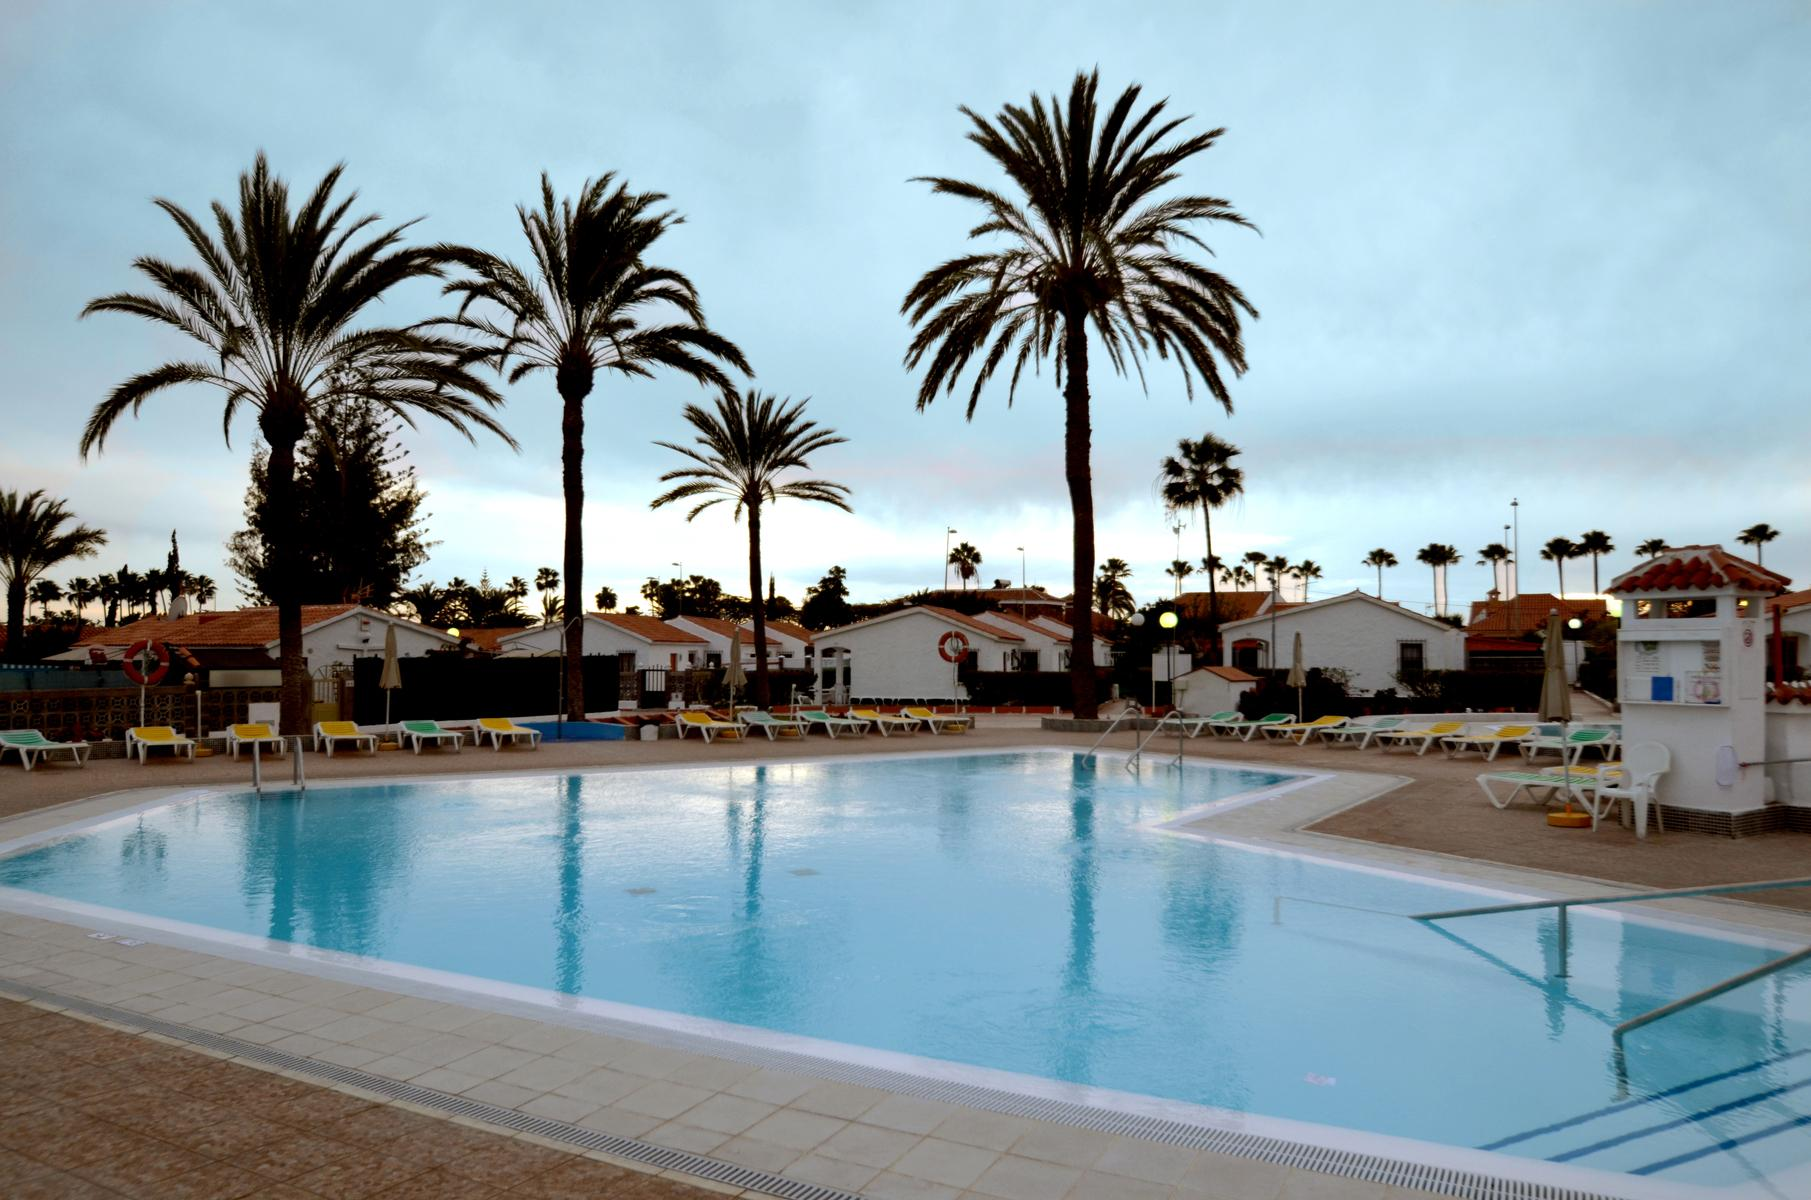 Los Arcos Bungalows in Playa del Ingles, Gran Canaria, Canary Islands